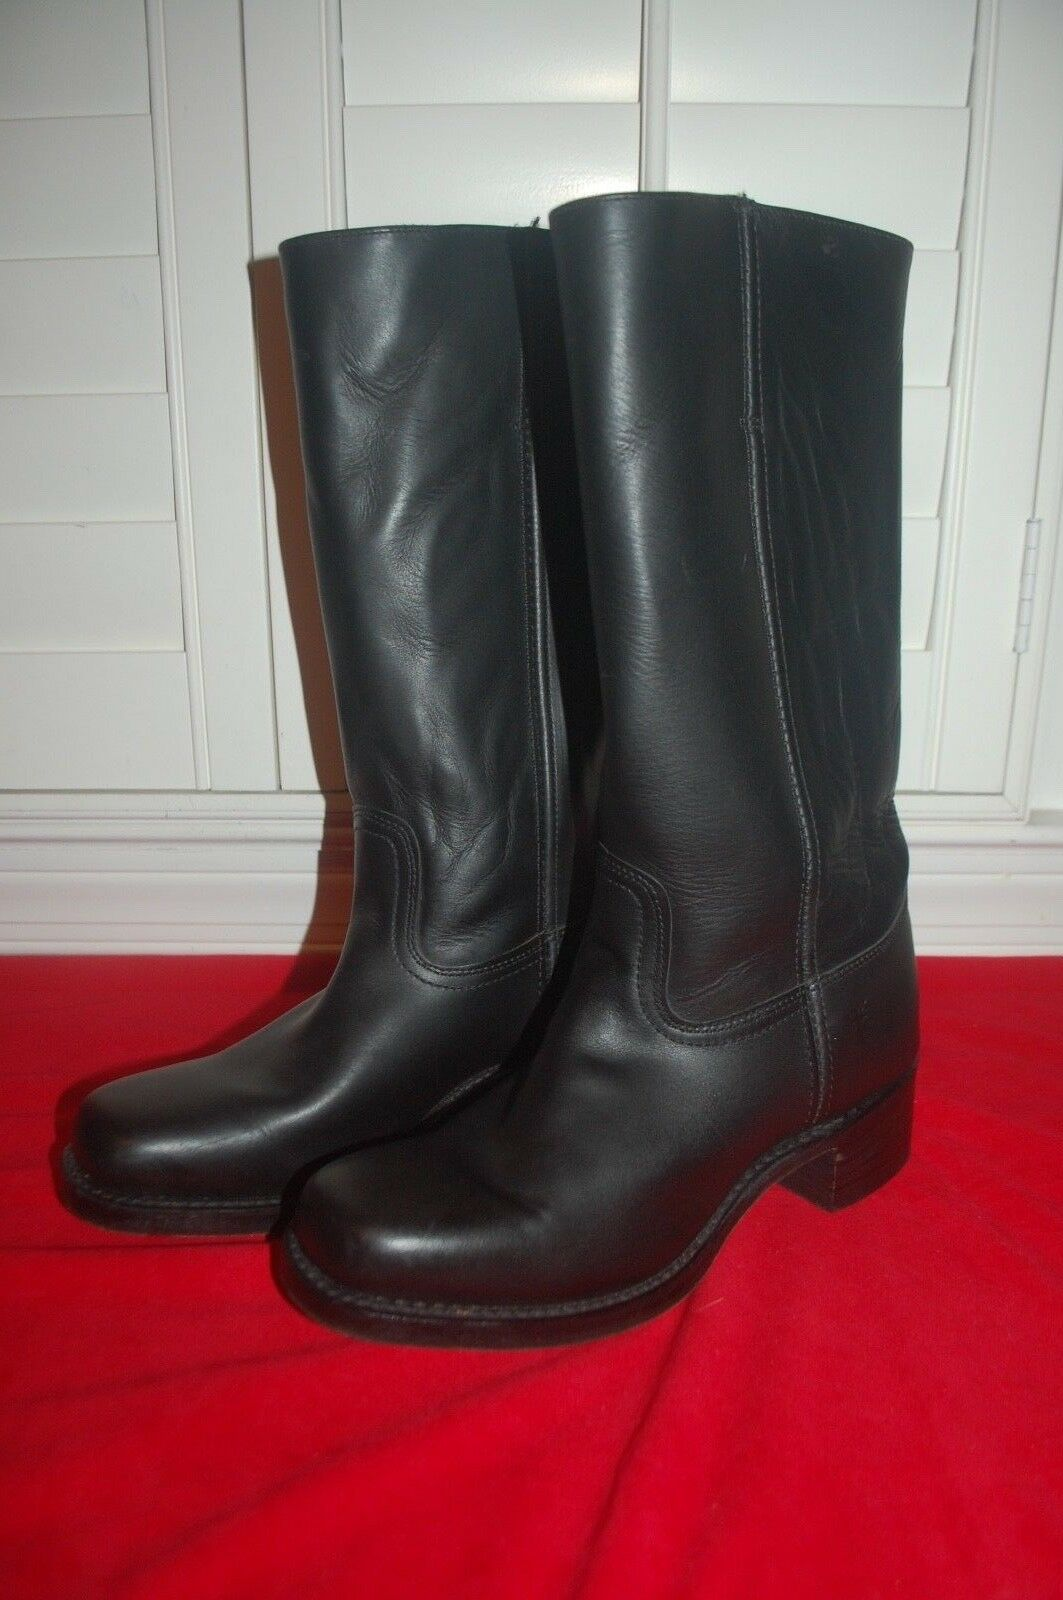 FRYE Campus 14L Black 77050-4 Leather Motorcycle Women's Boots 11 M Made in USA